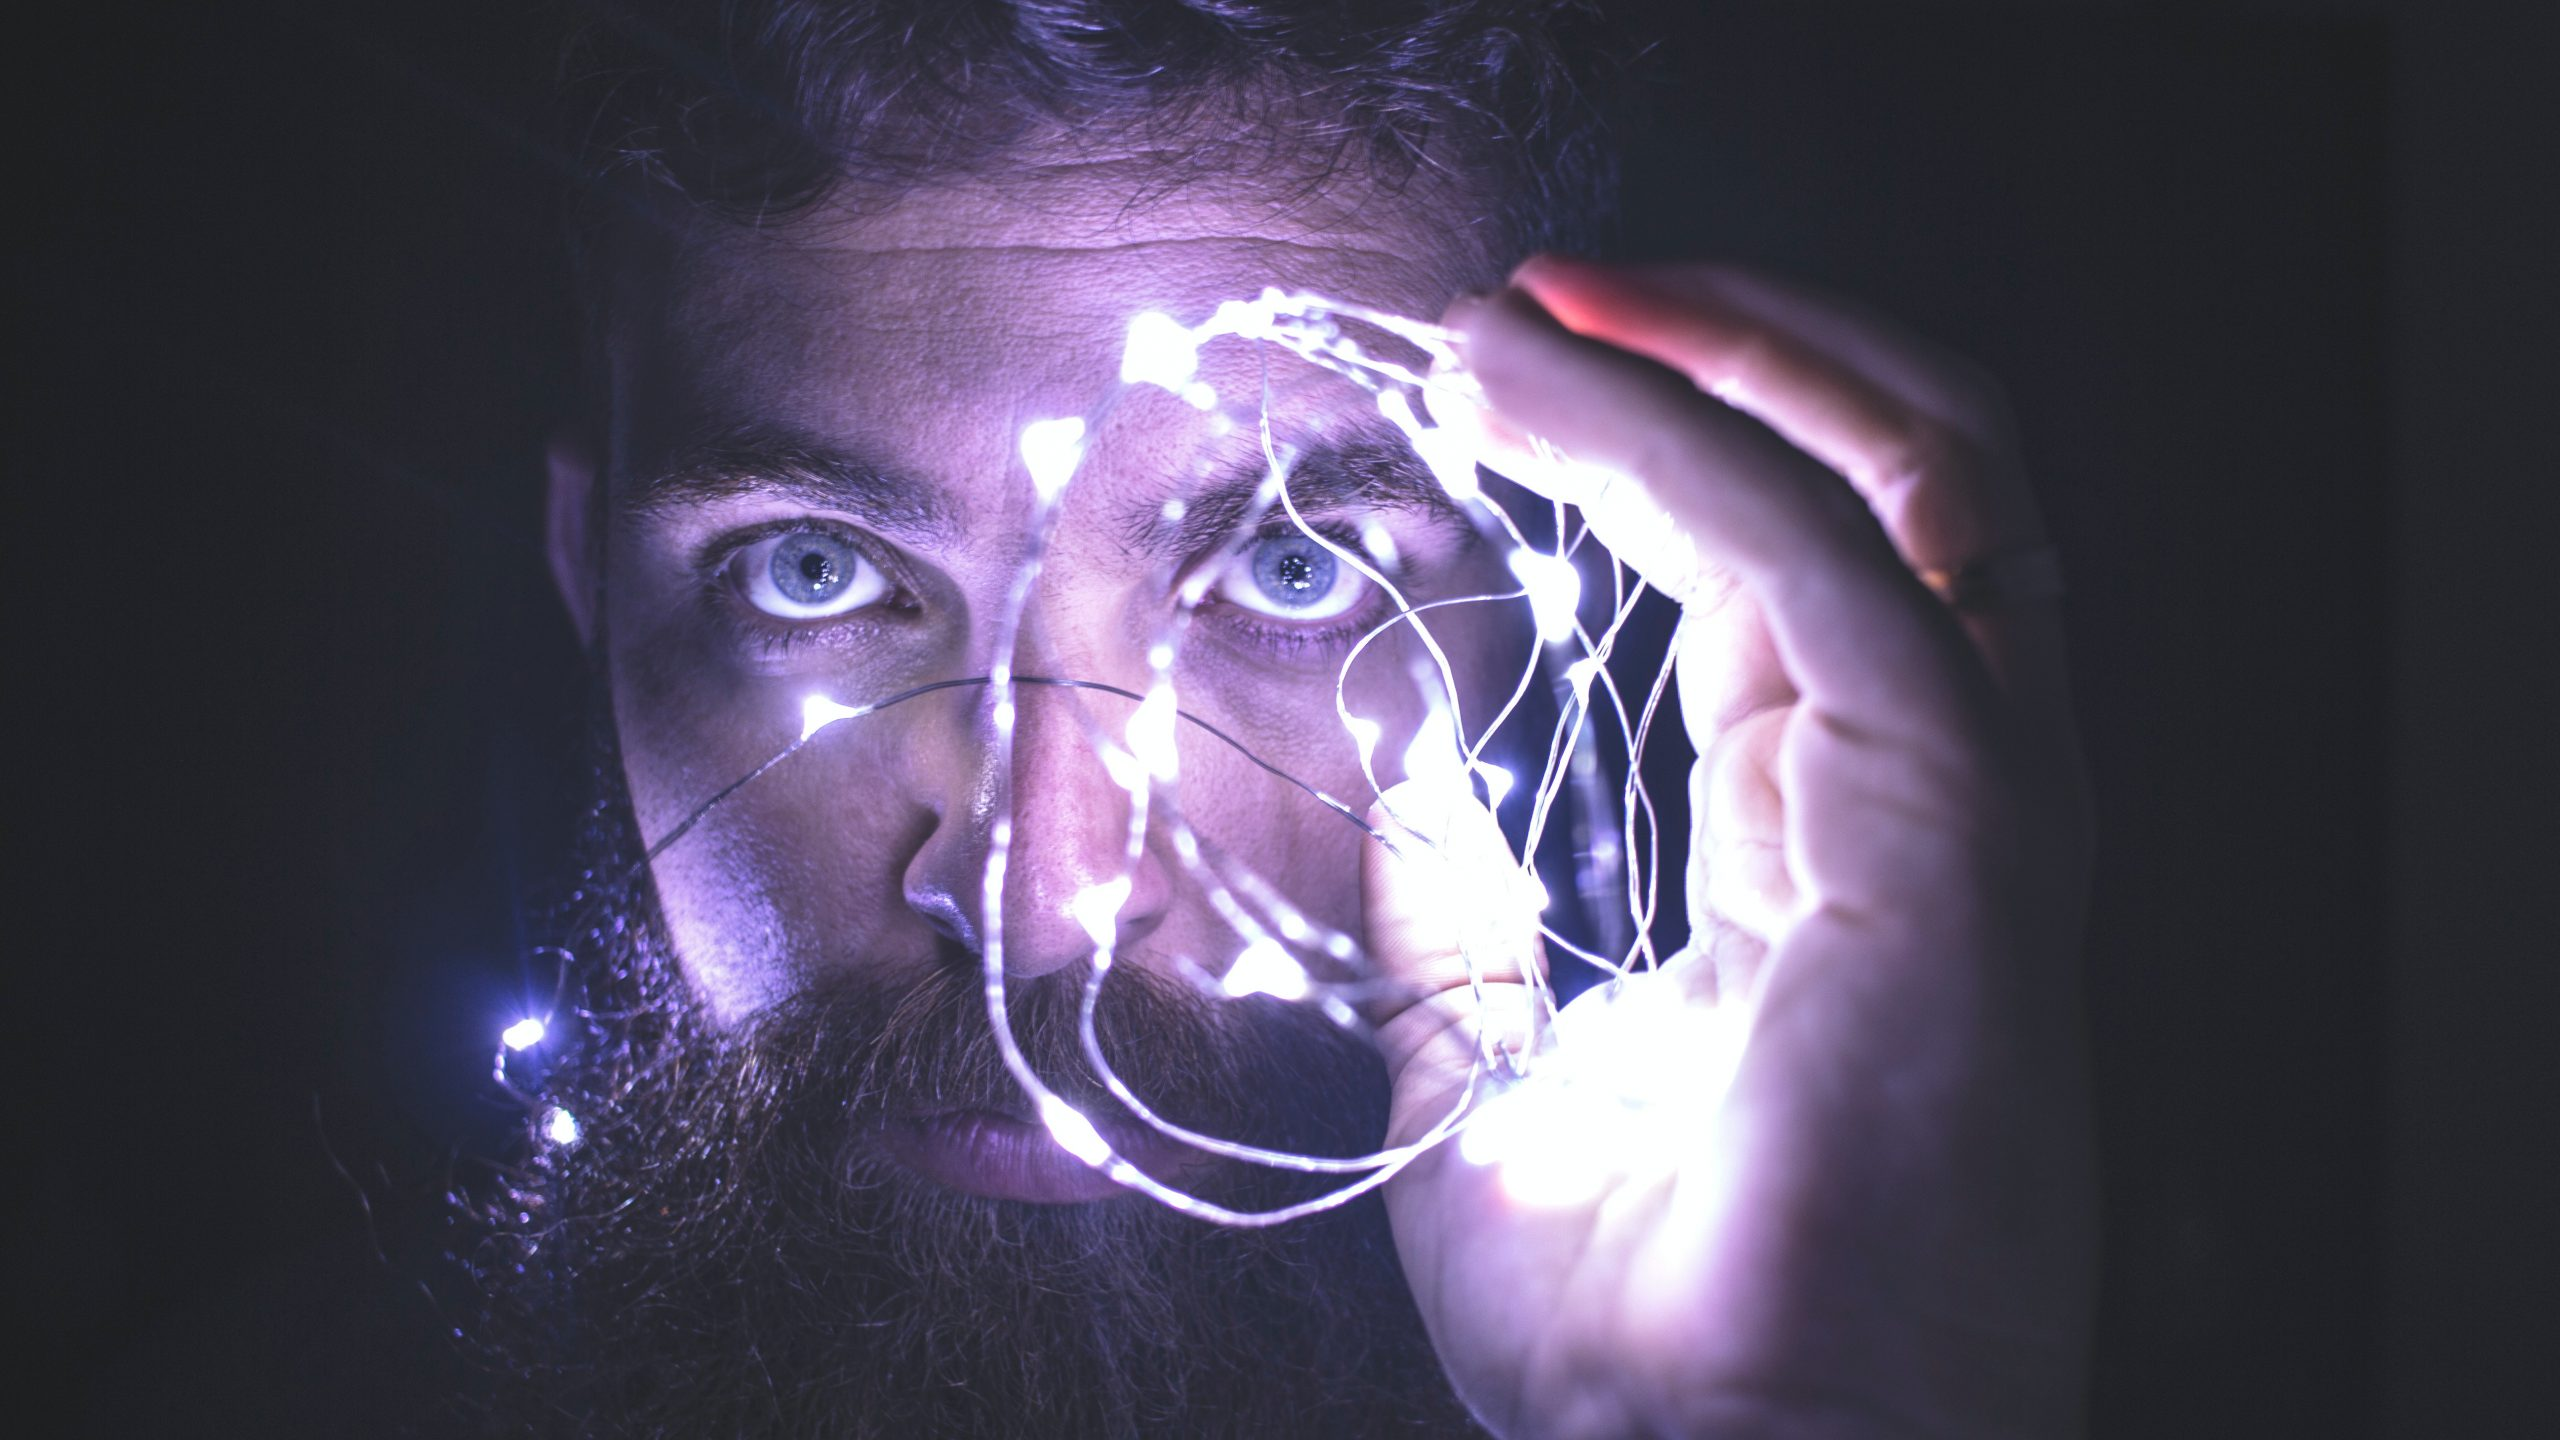 Closeup of a bearded man's face. He eyes are open wide and staring while he holds a cioled string of white lights in front of his left eye. The photo is symbolically representative of meth psychosis.